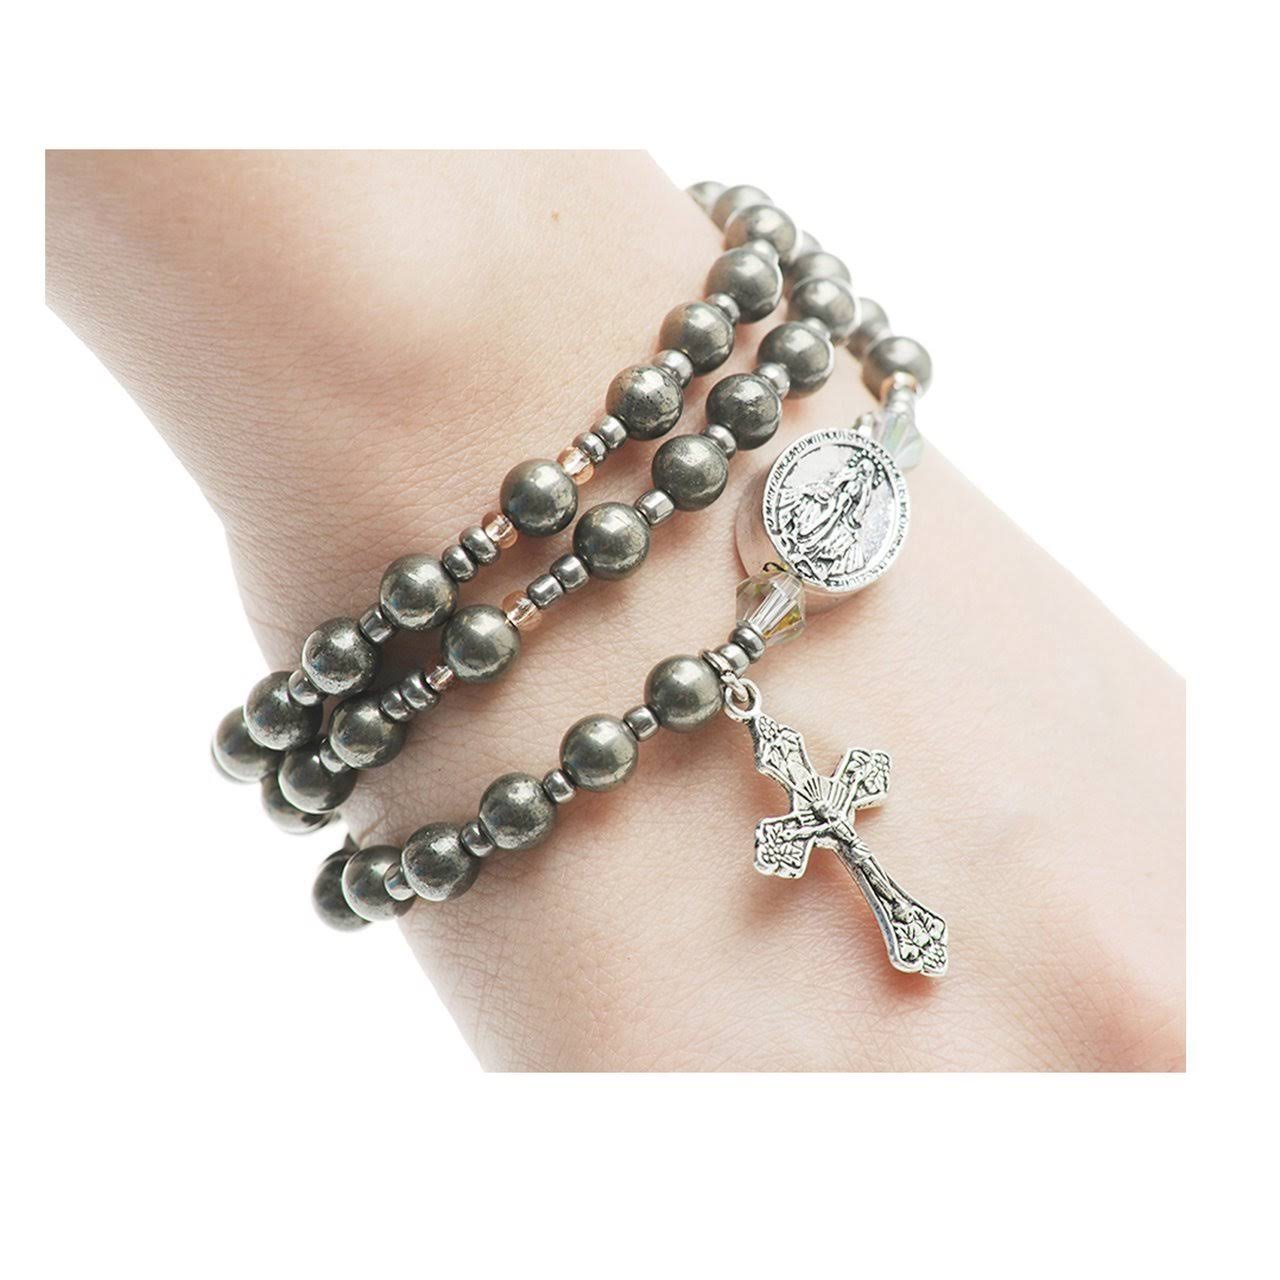 Twistable Simulated Gemstone Full Rosary Bracelet Hematite